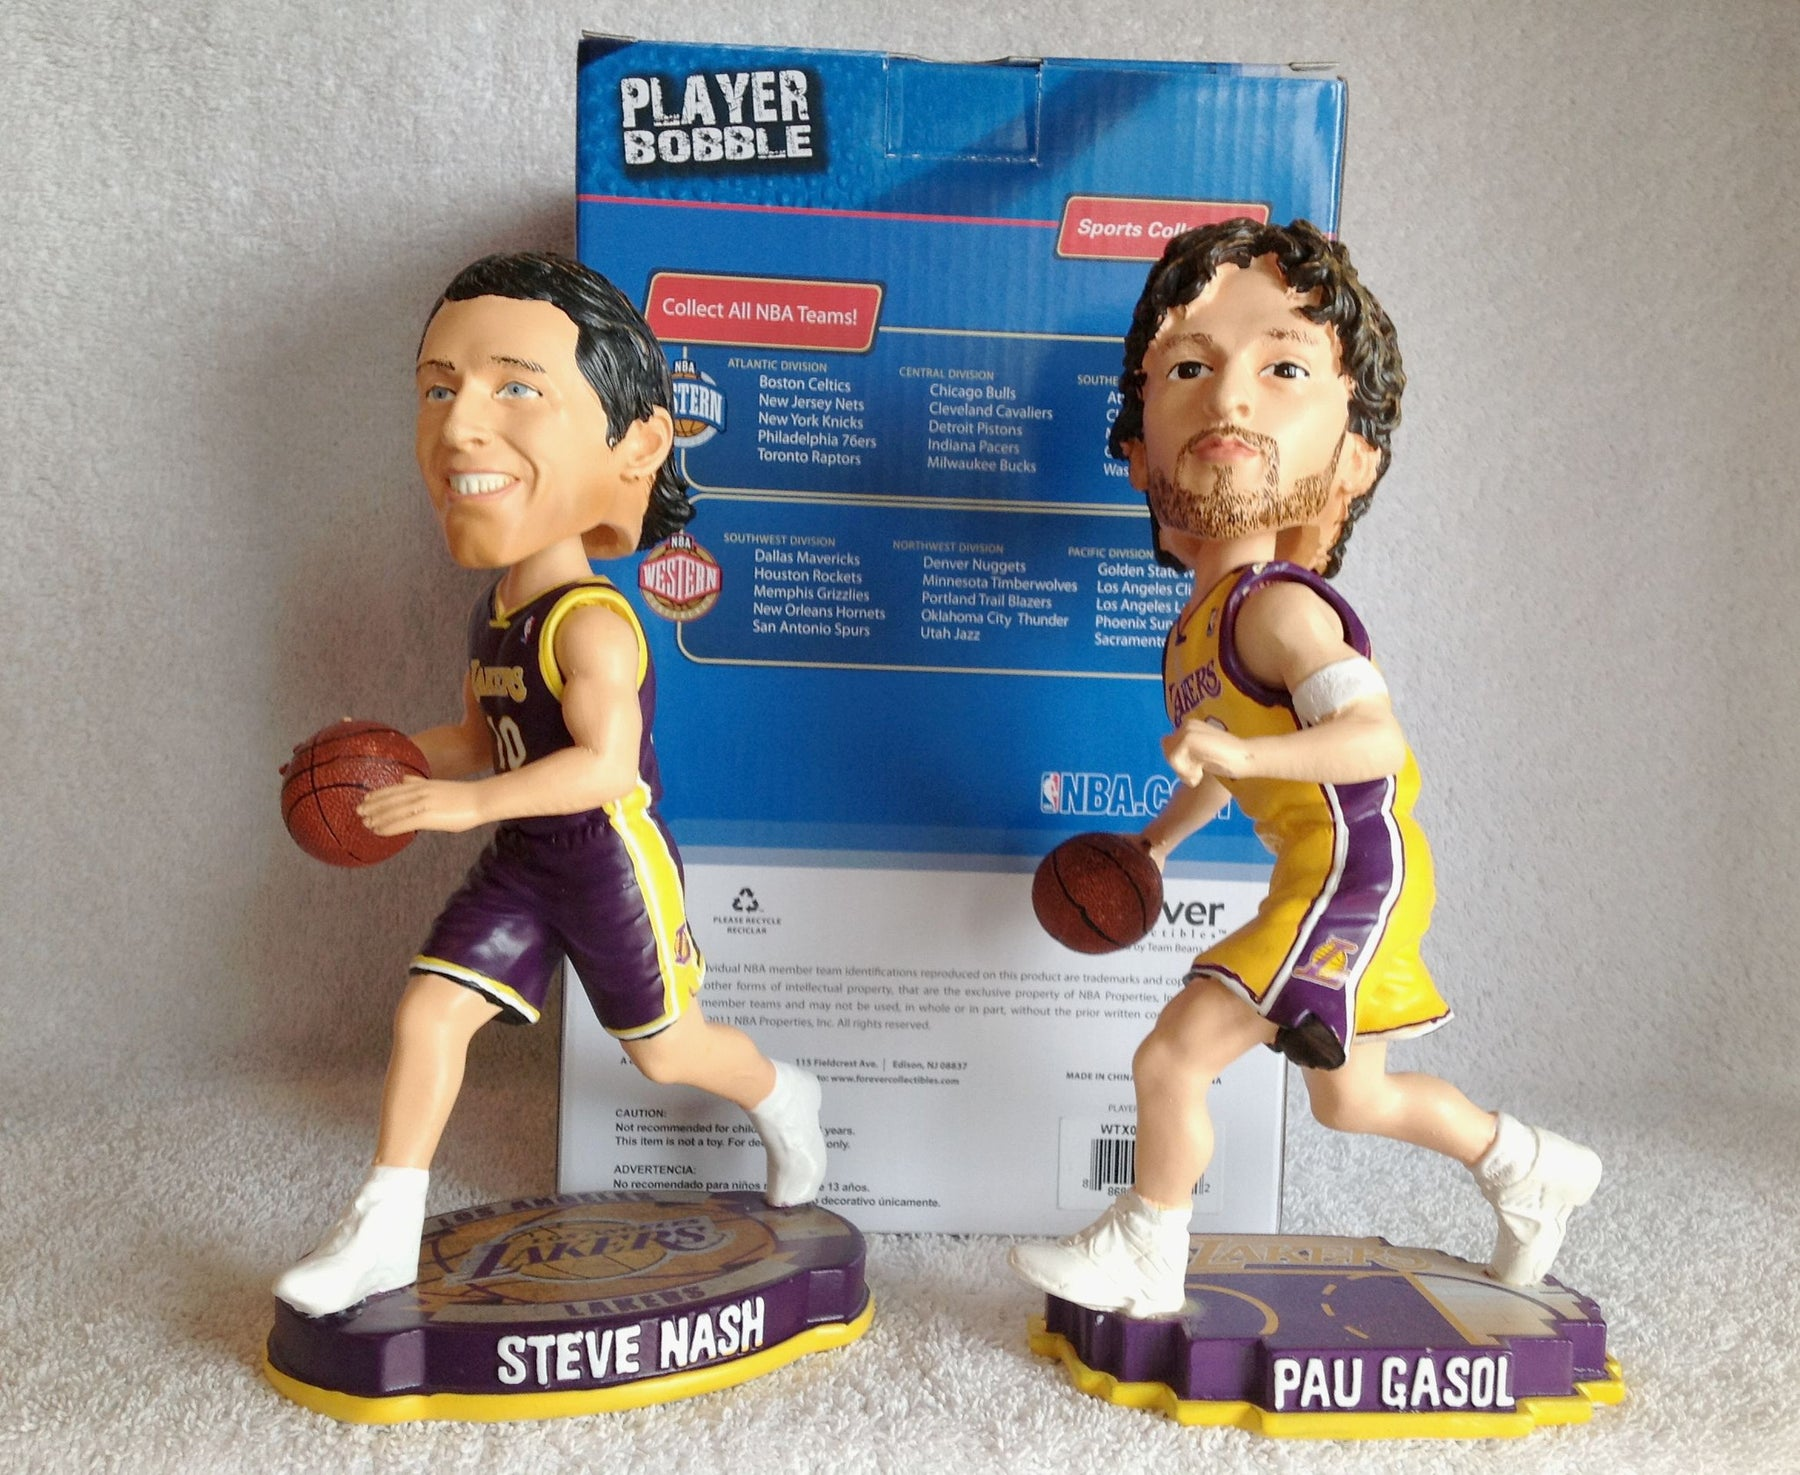 Steve Nash and Pau Gasol Bobblehead Set - BobblesGalore